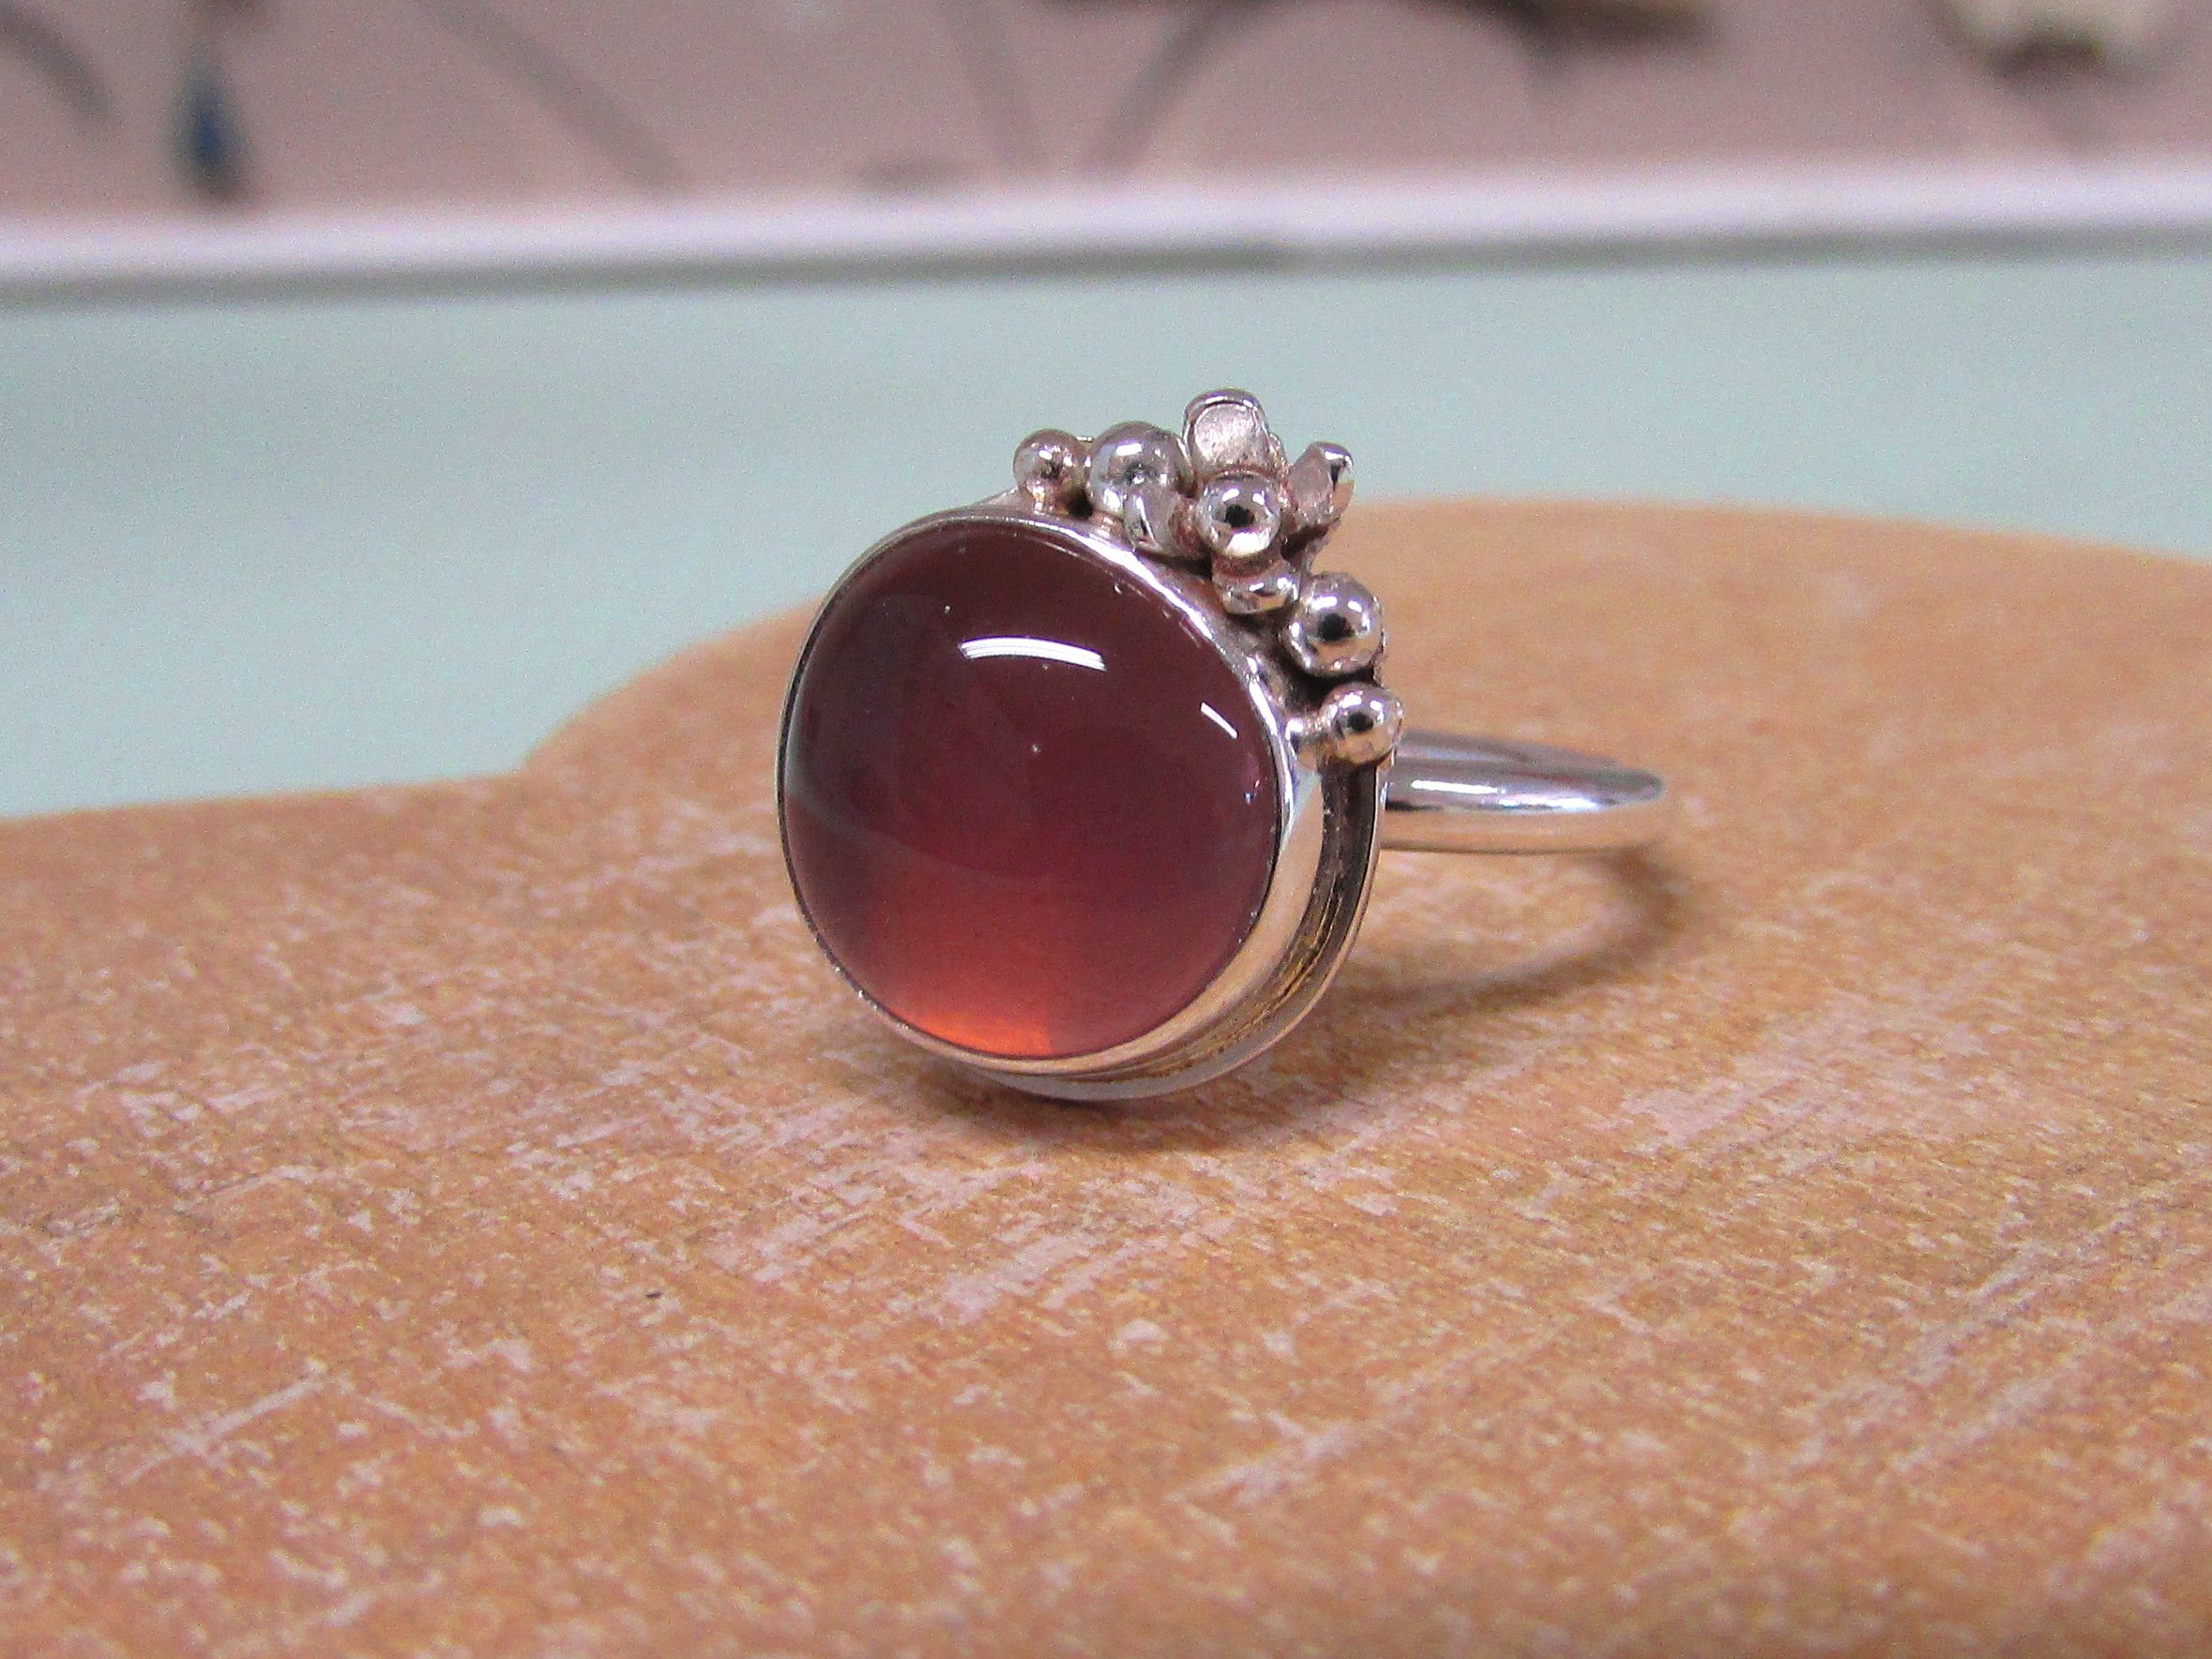 Fused glass and sterling silver ring by Bay Design.